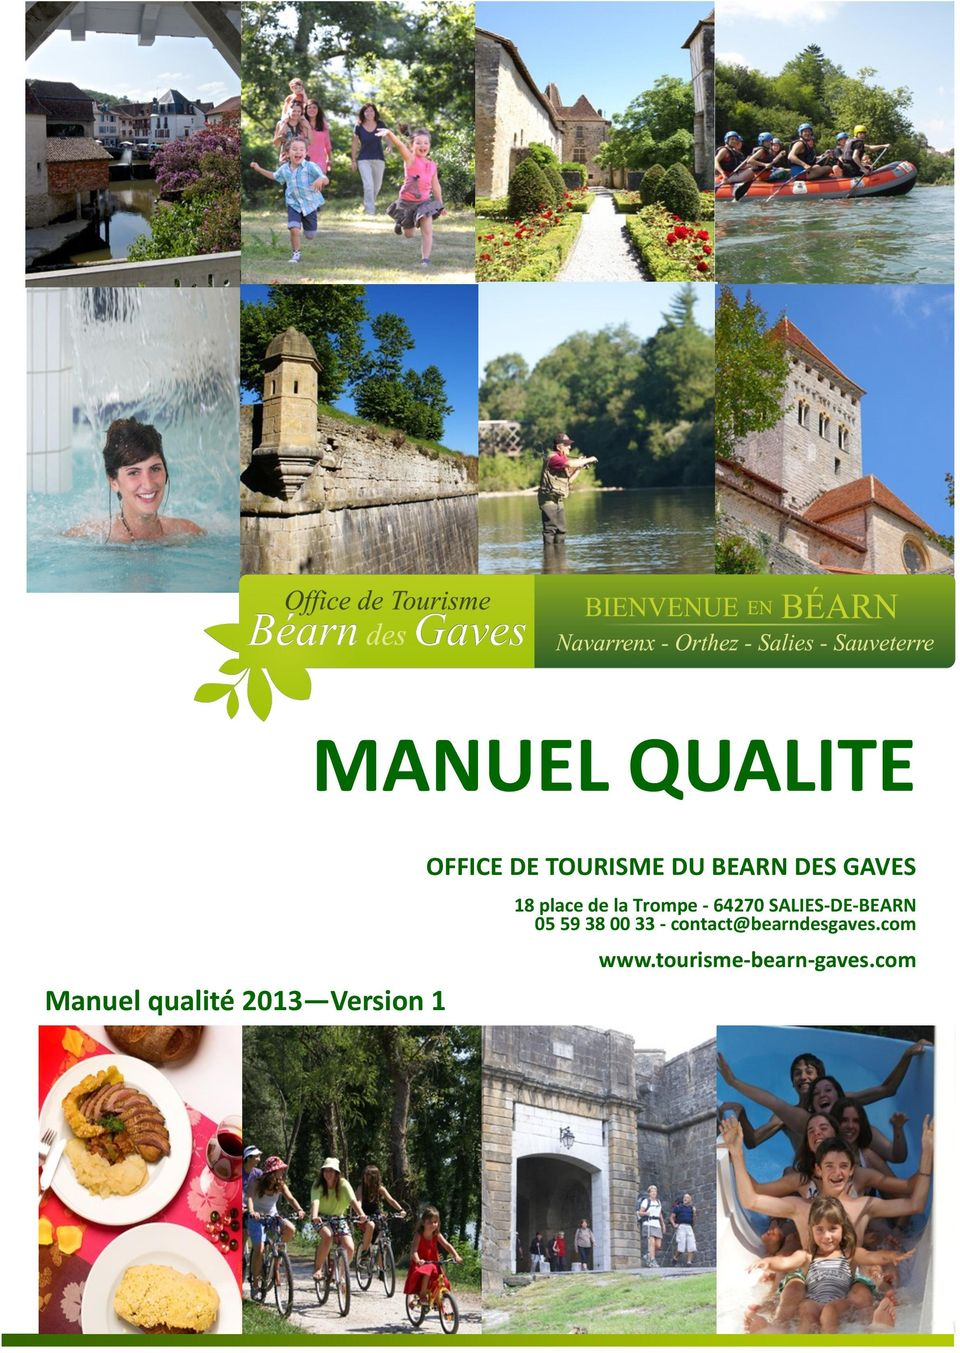 Manuel qualite manuel qualit 2013 version 1 office de - Office du tourisme de nantes telephone ...